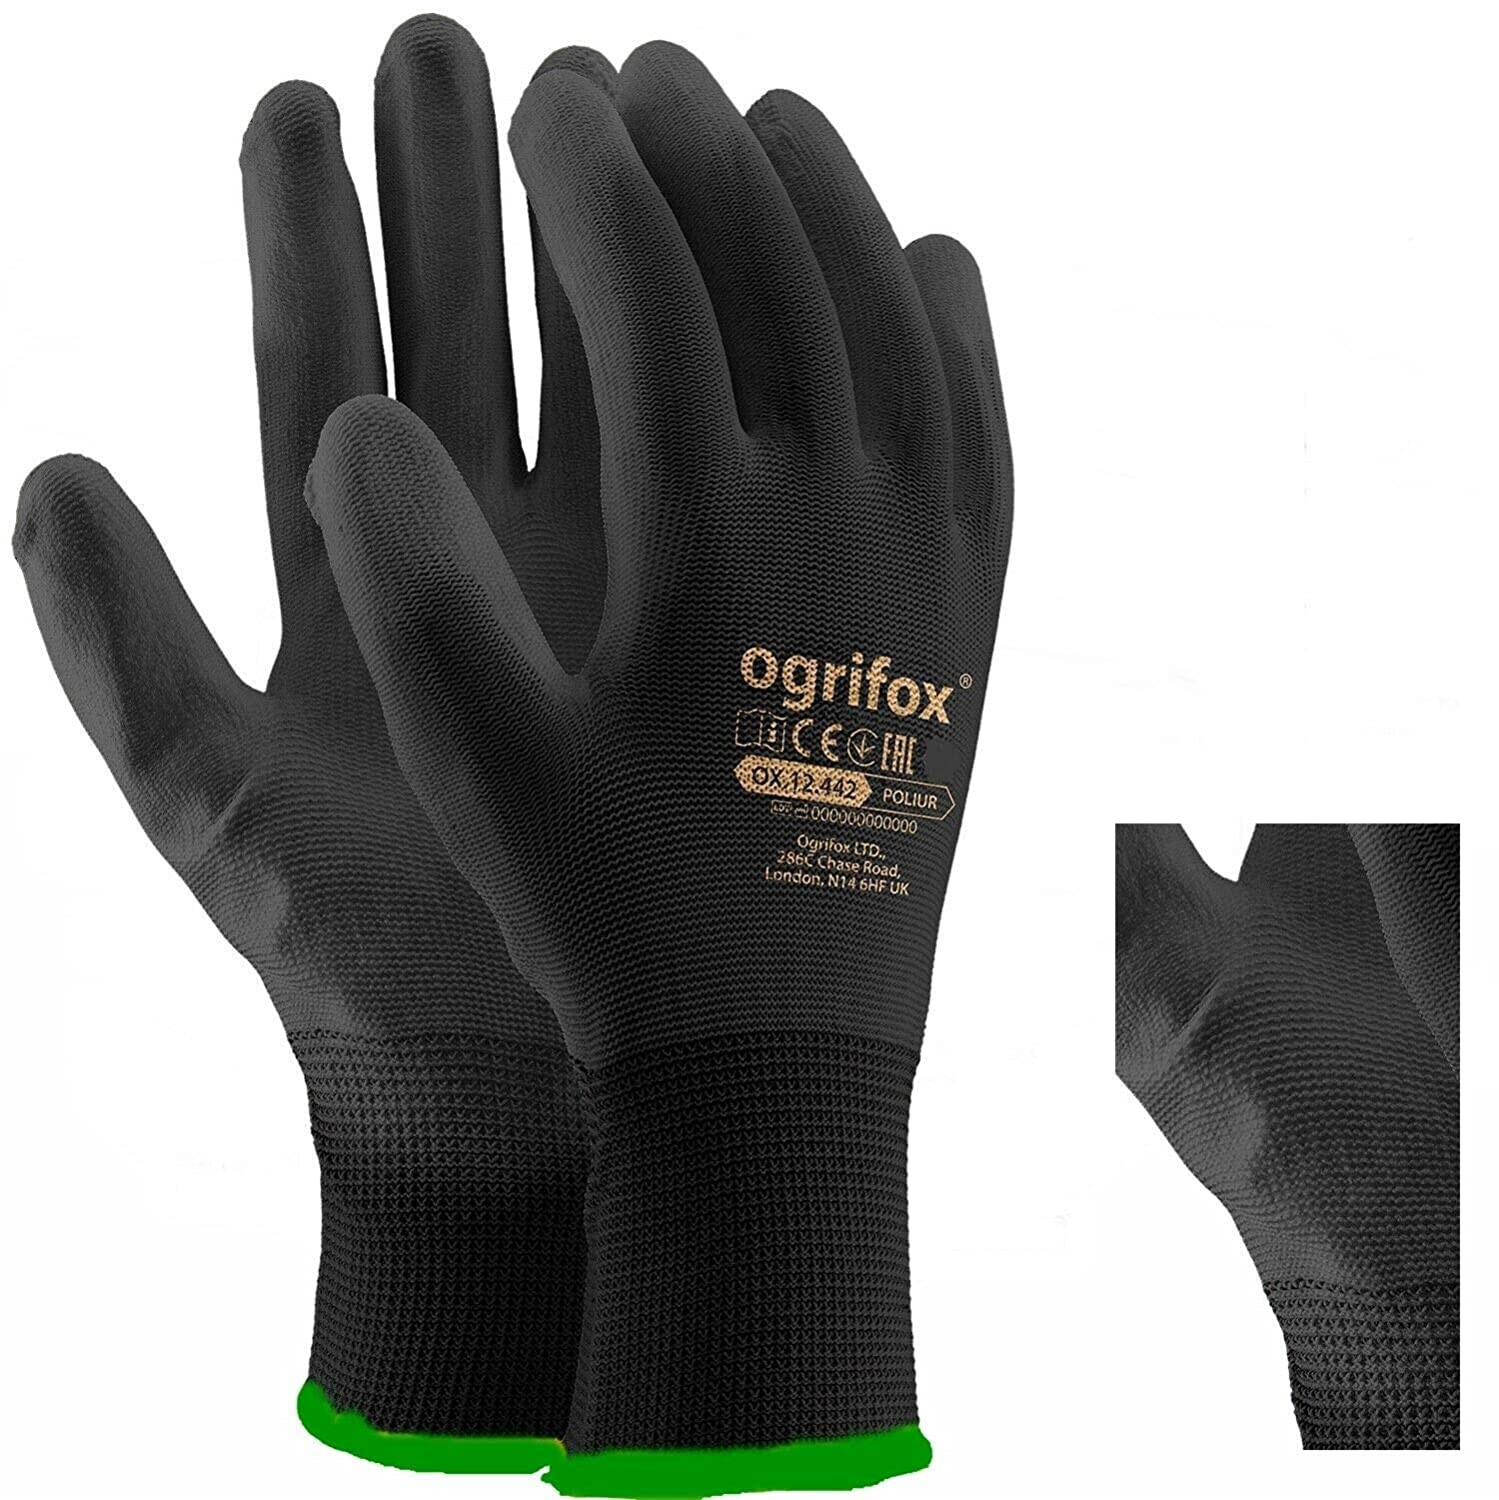 Builders S//7 36 Pairs PU Coated Black Nylon Work Gloves NO FRAME VISITOR SAFETY GLASSES CLEAR LENS Mechanic Gardening LIGHTWEIGHT